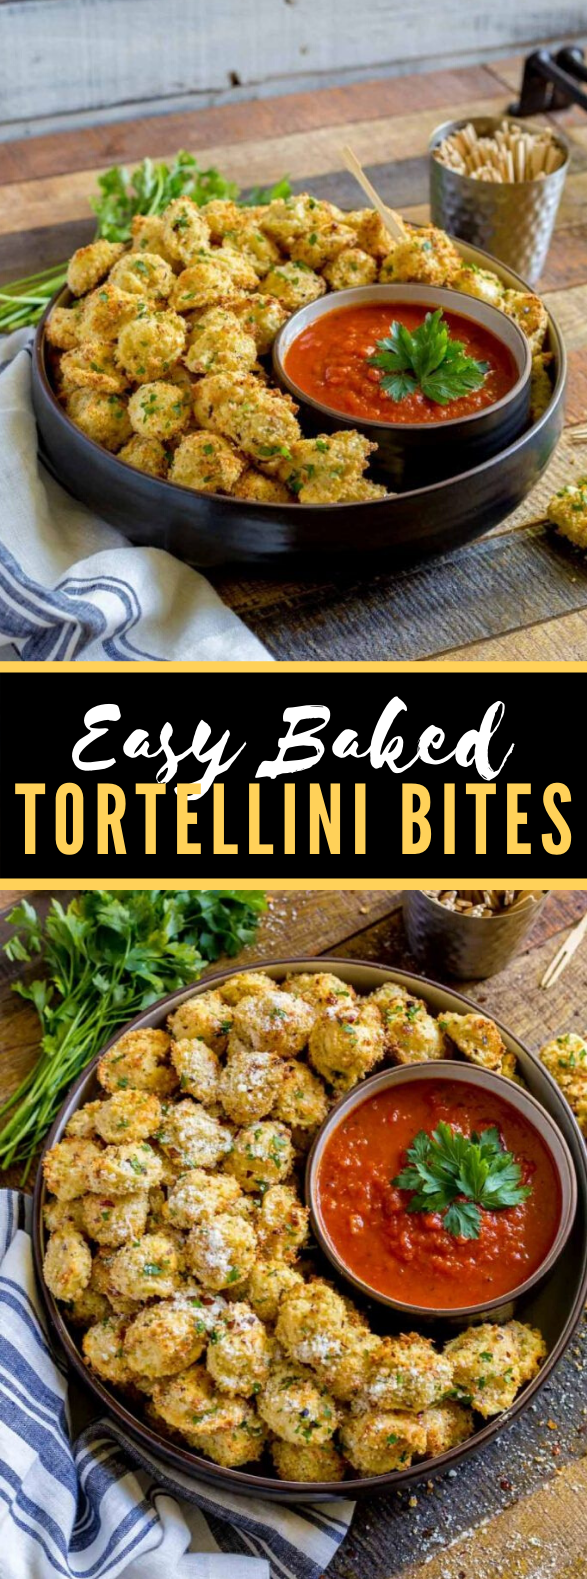 TORTELLINI PARTY SNACKS #appetizers #gameday